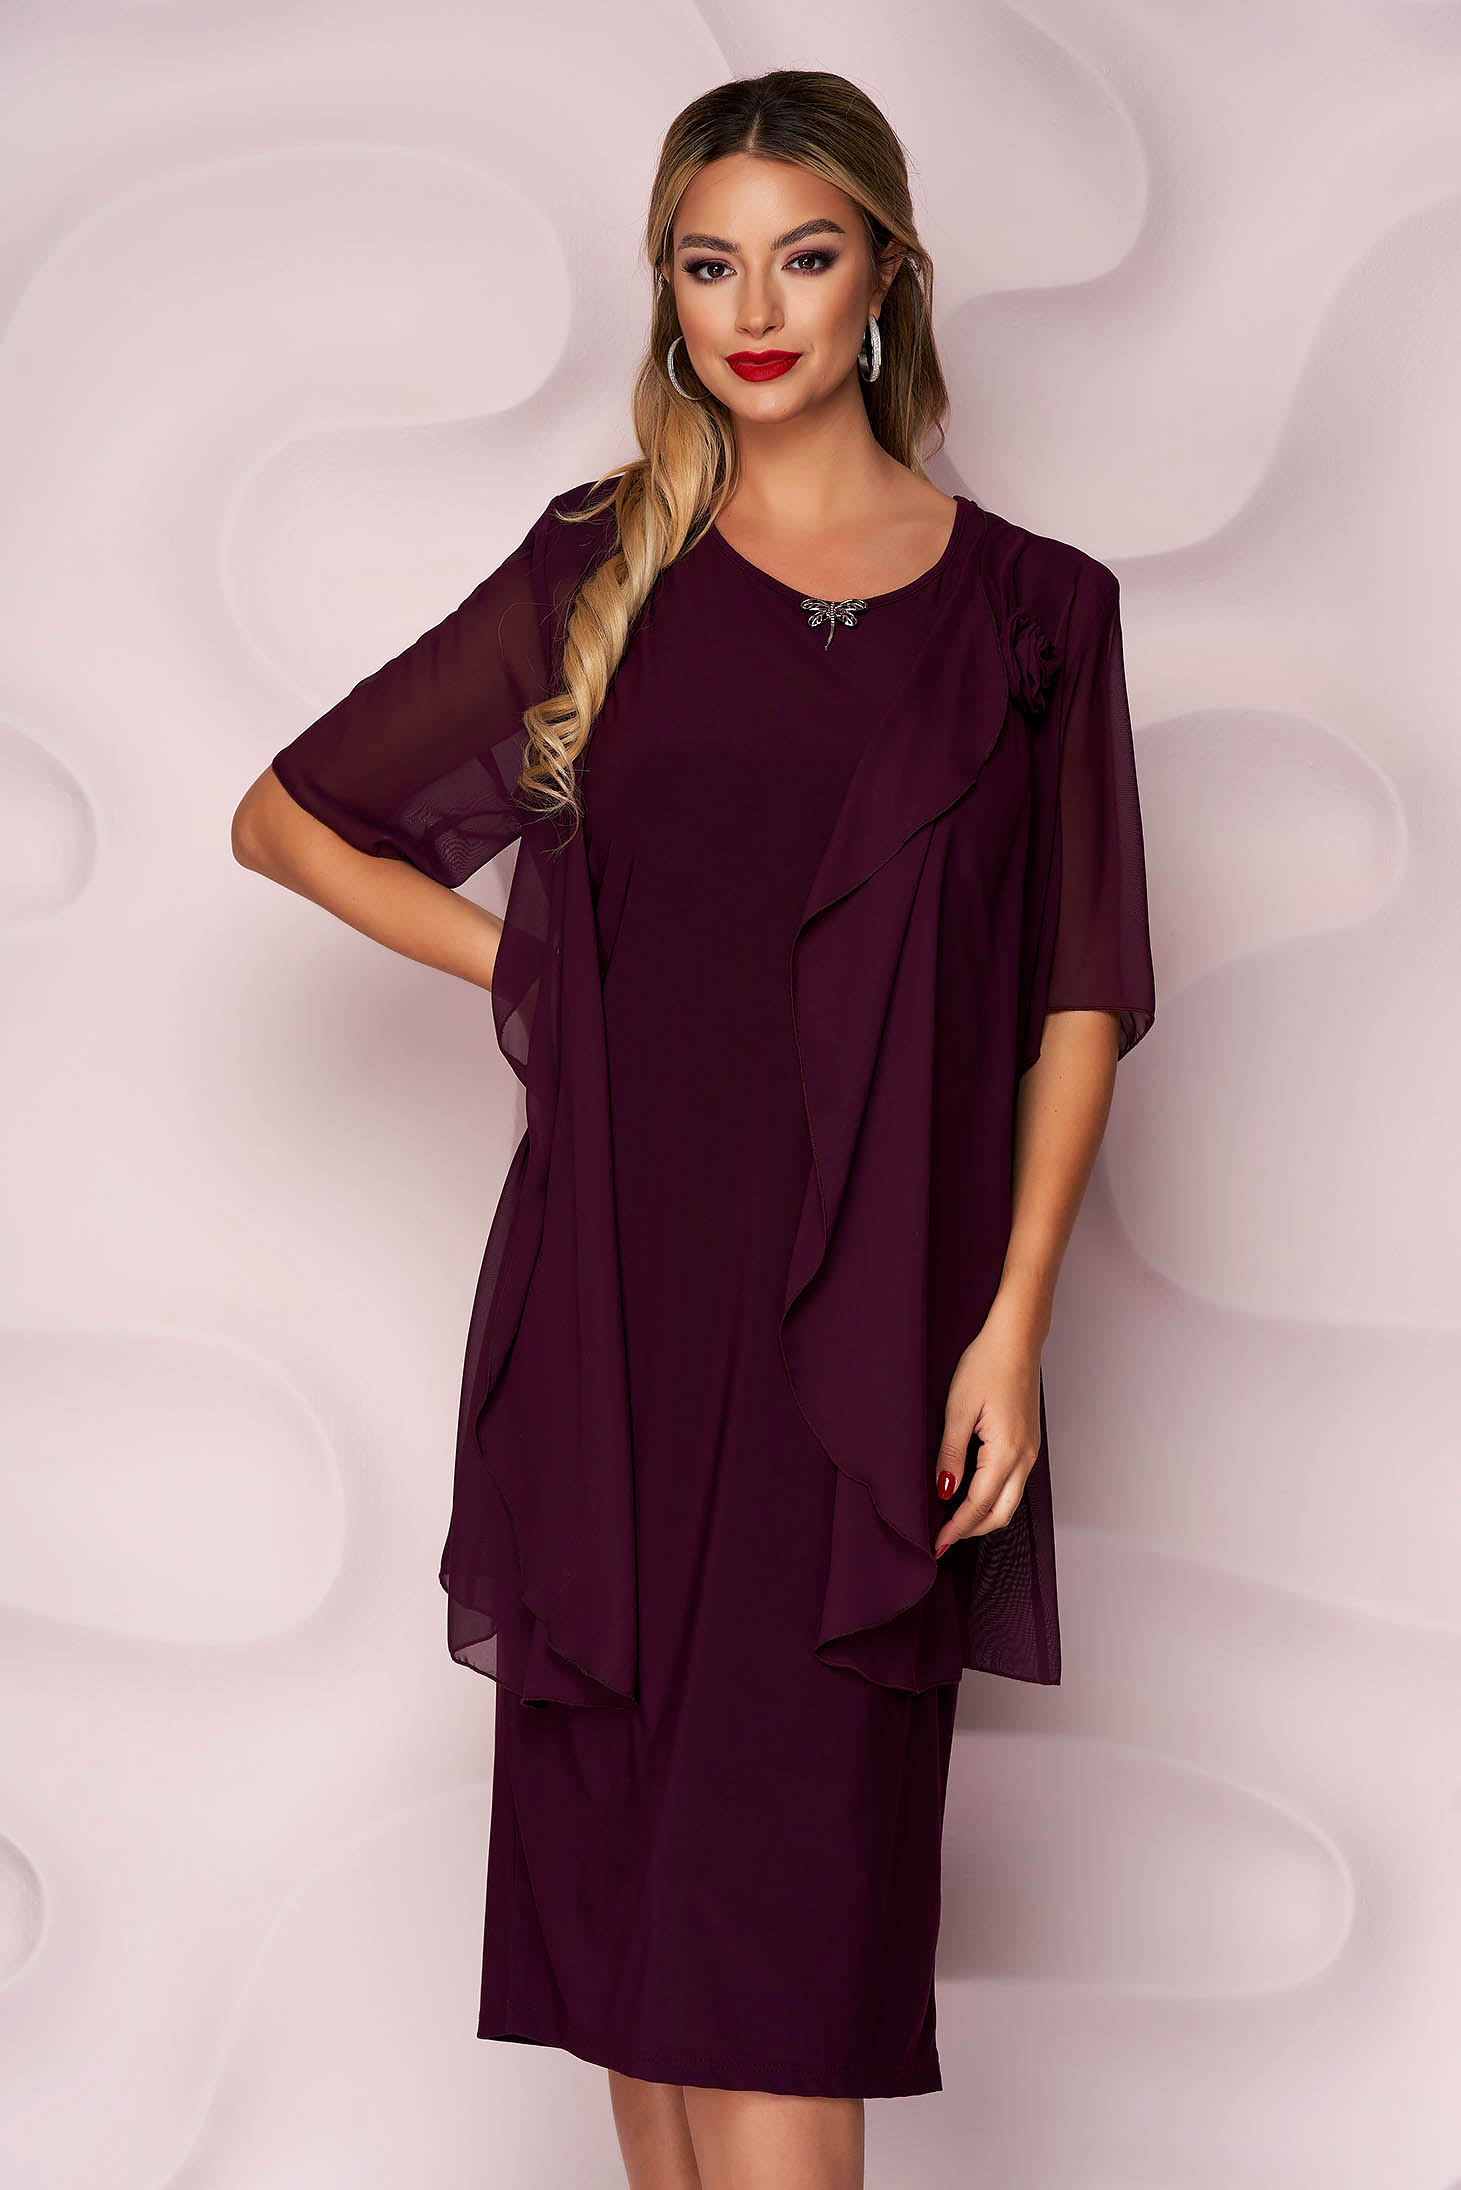 Purple dress midi occasional voile overlay with padded shoulders straight